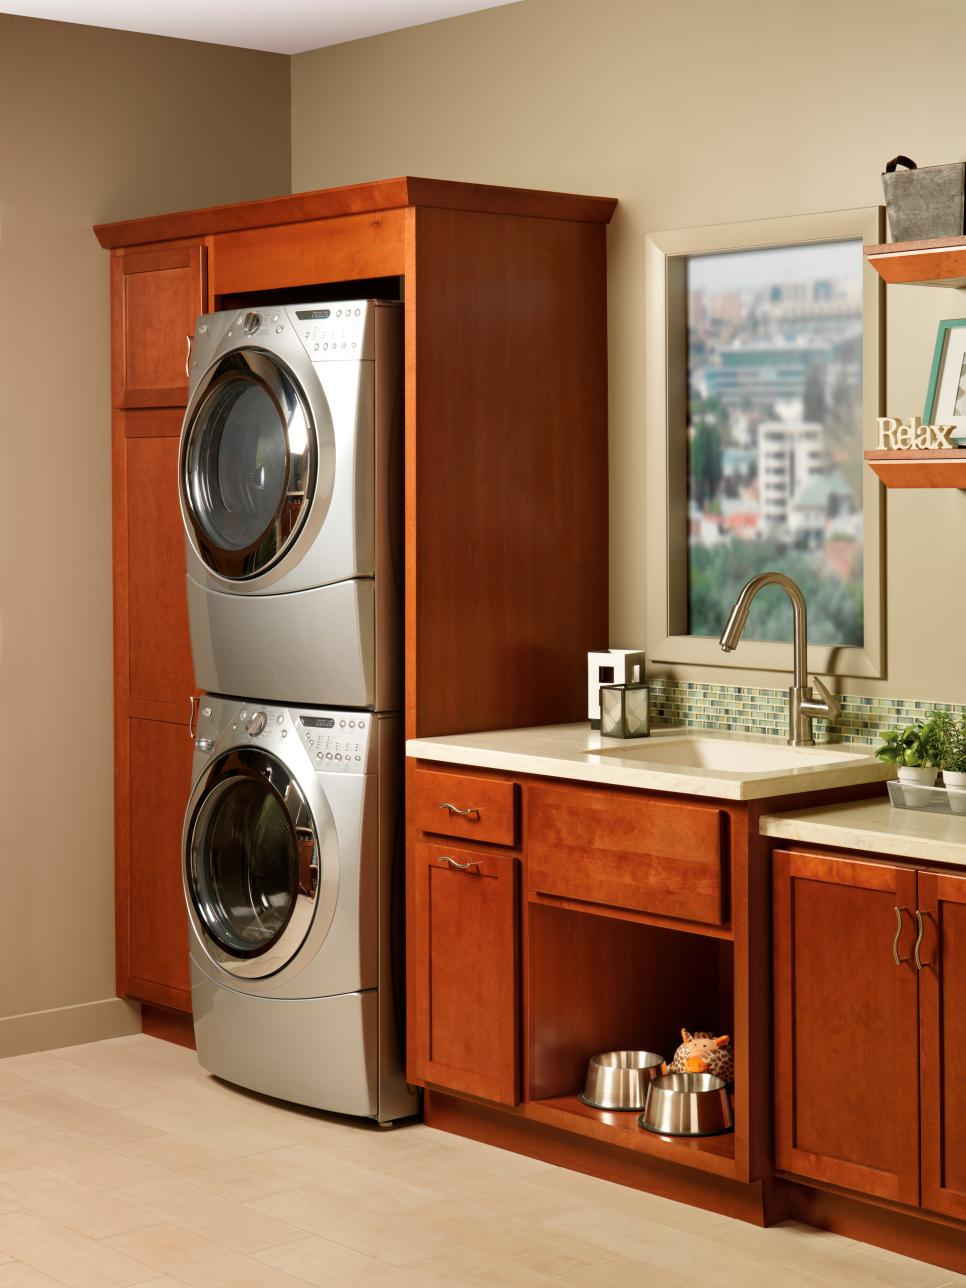 Laundry room design ideas hgtv - Laundry room design ideas ...